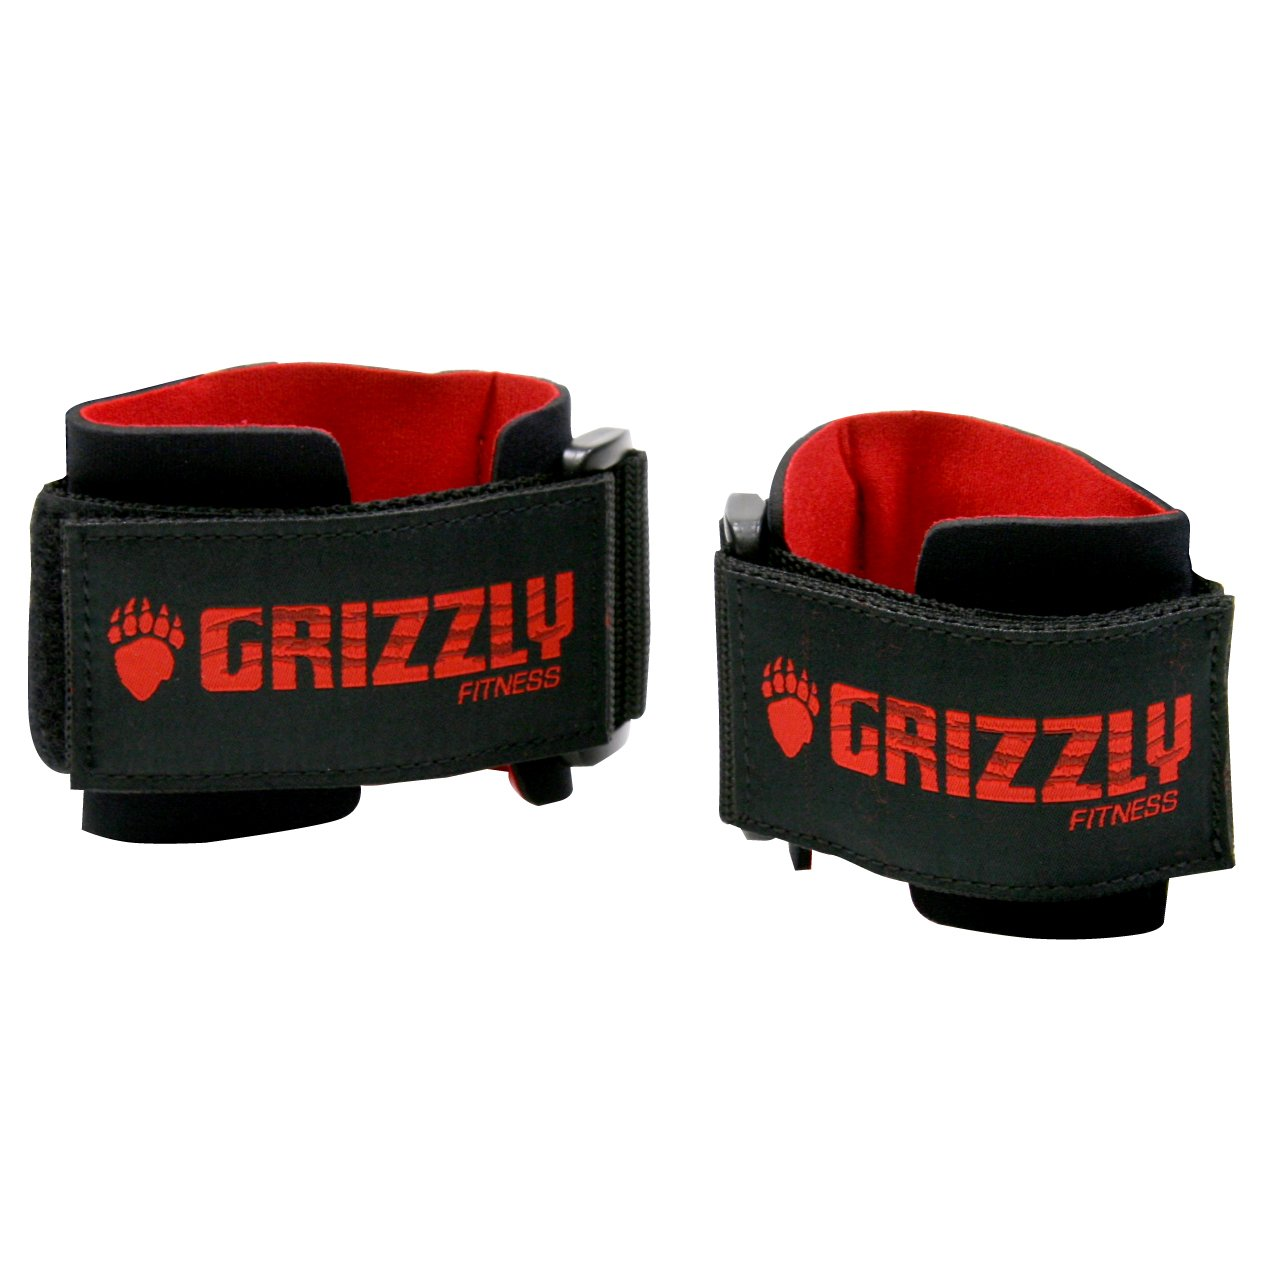 New Wrist Wraps Lifting Weight Training Supports Straps